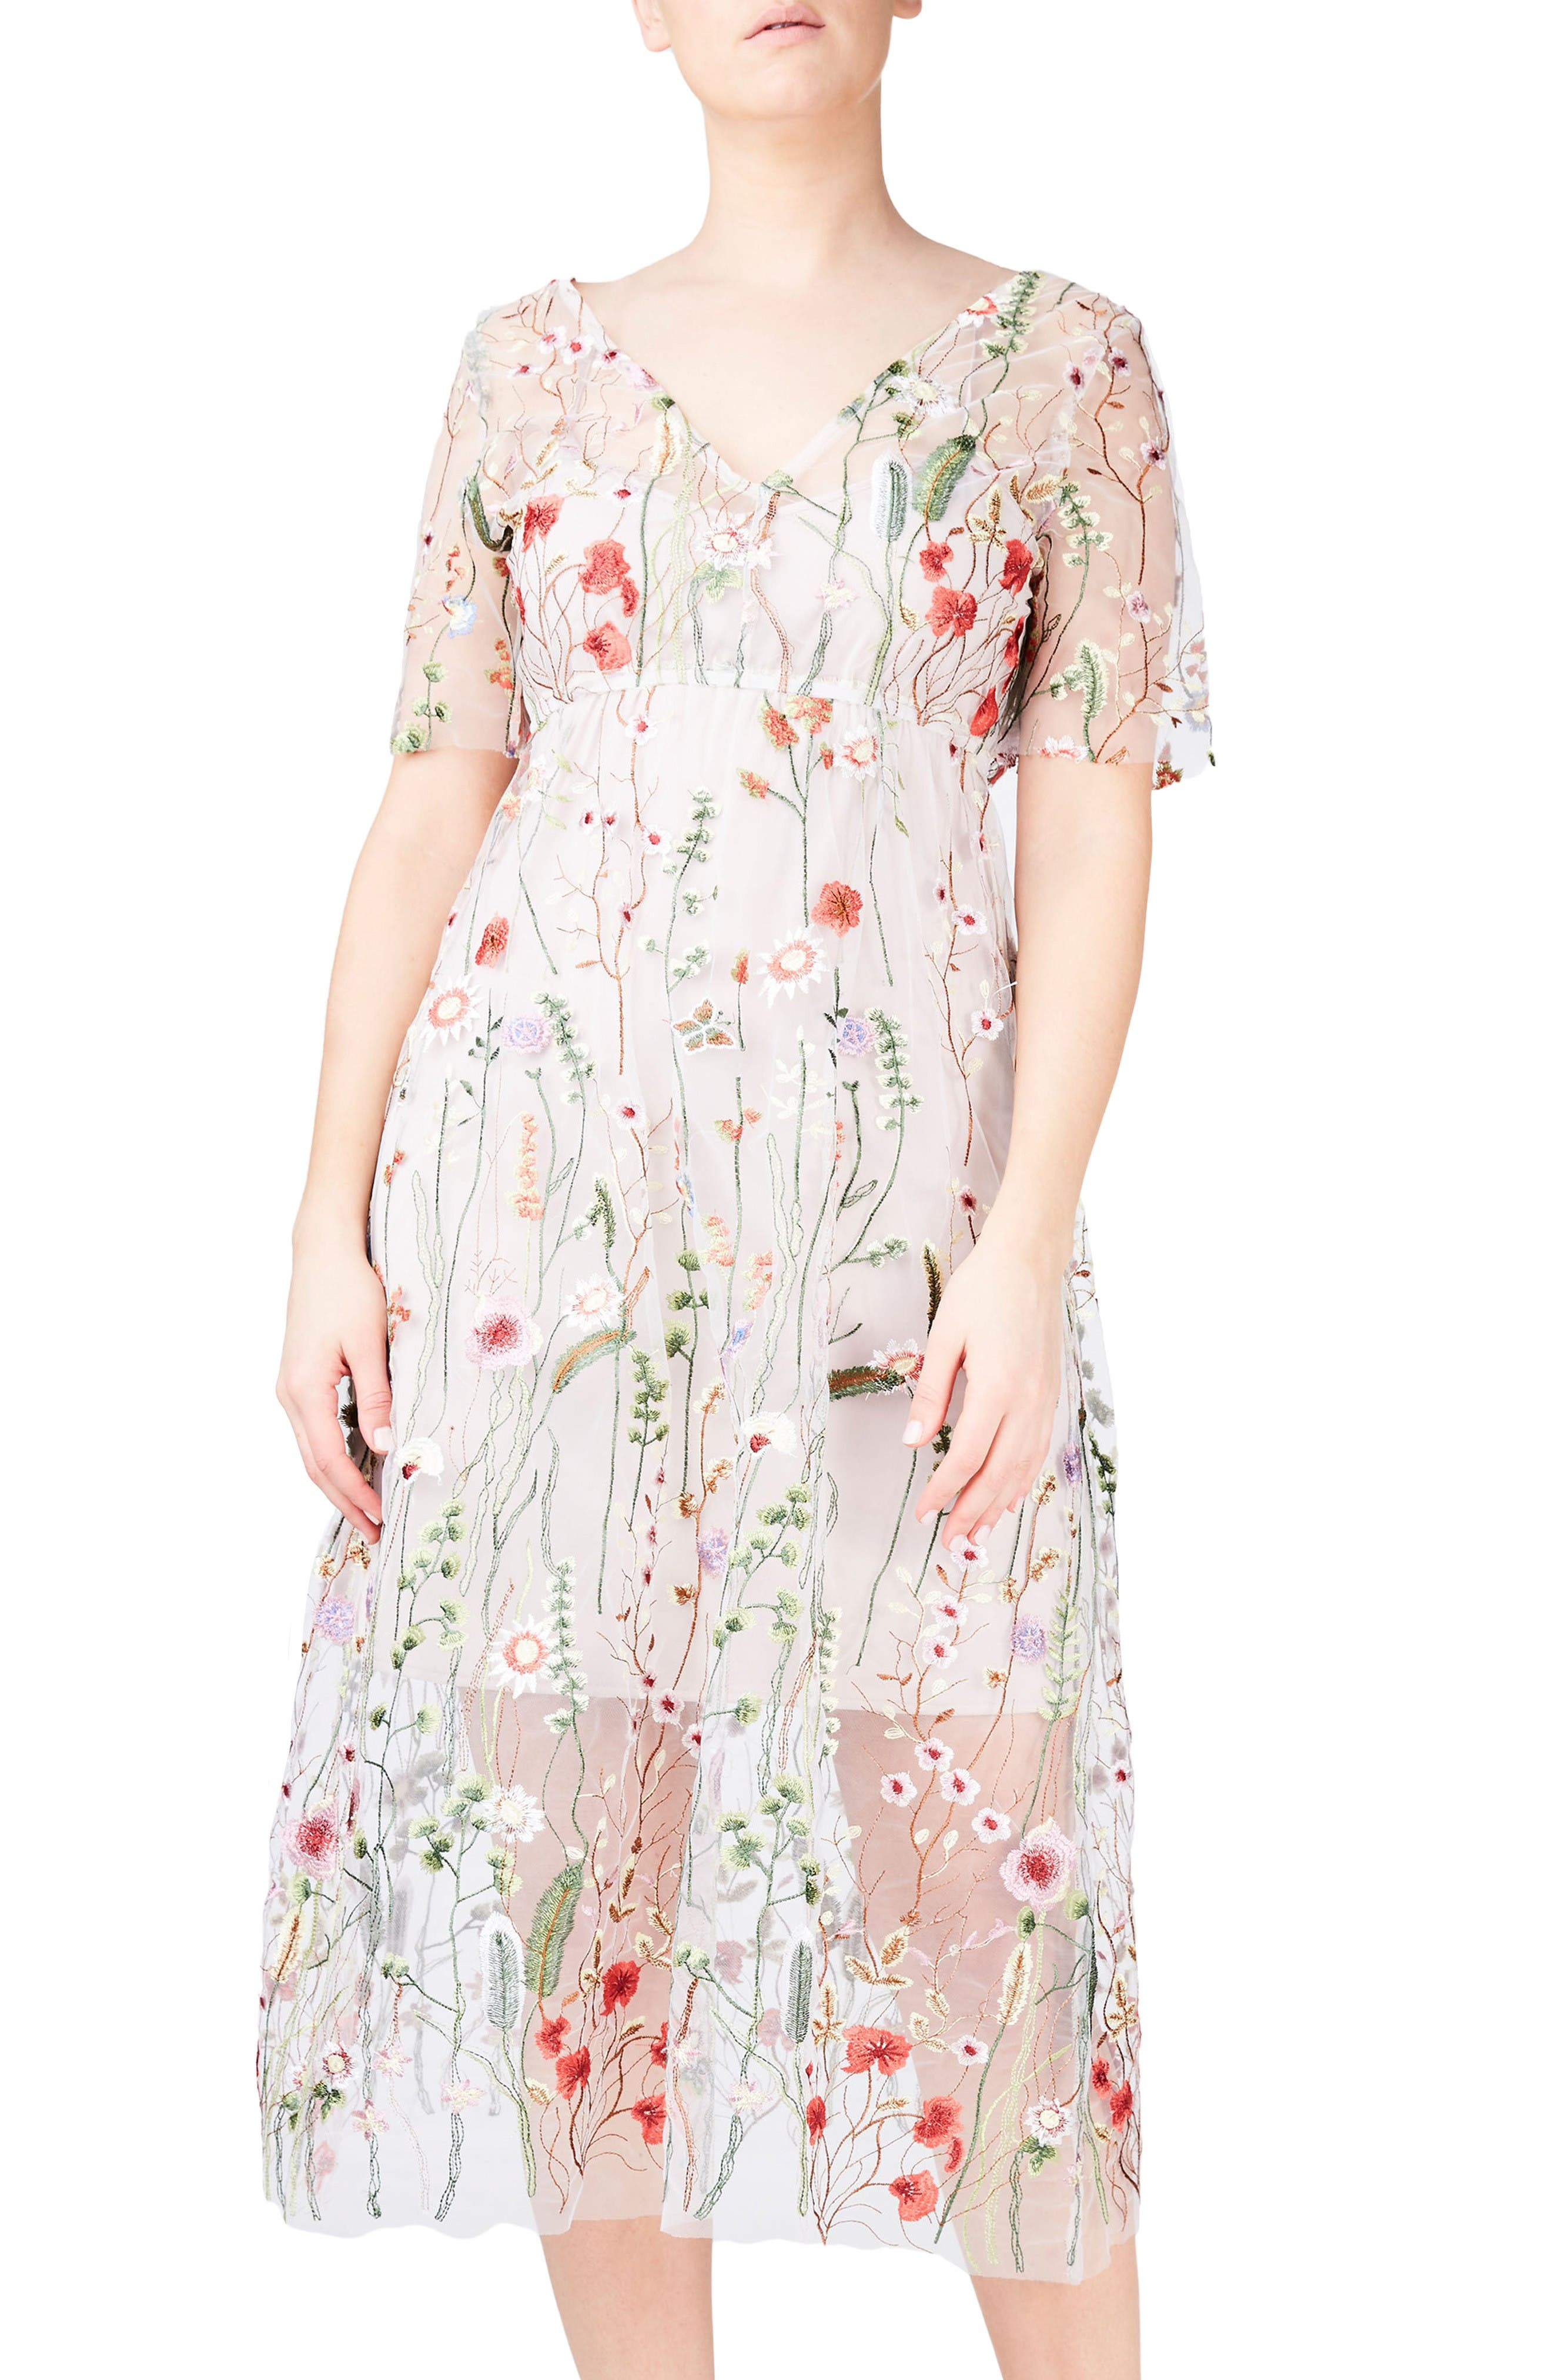 Main Image - ELVI Floral Embroidered Floral Net Dress (Plus Size)